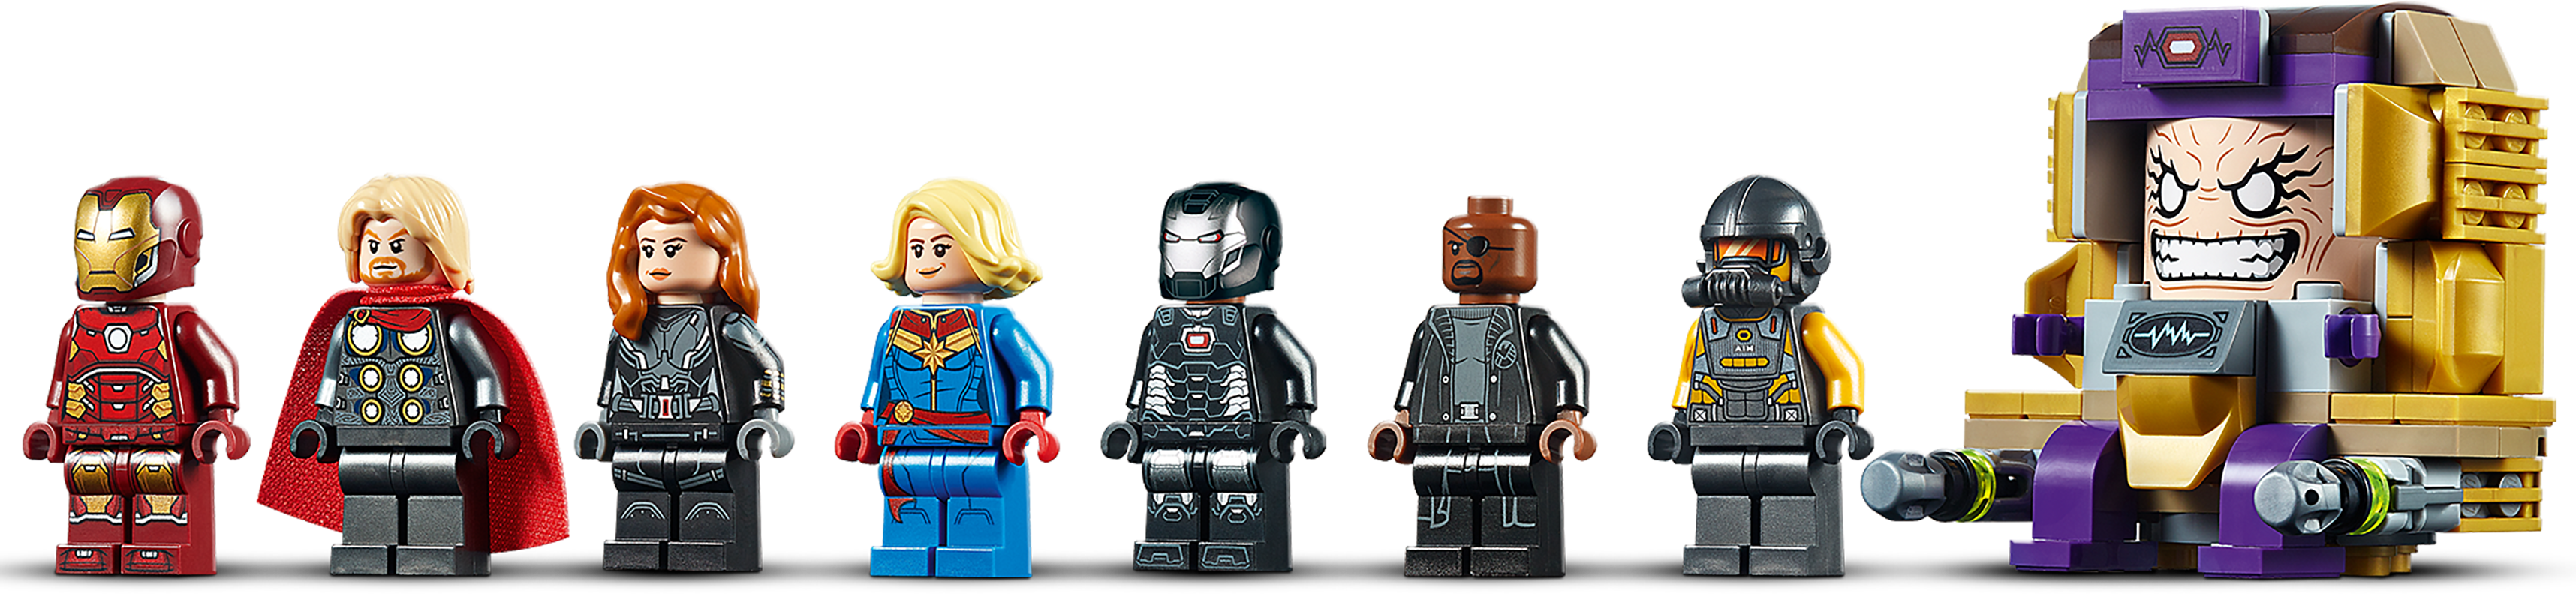 Nick Fury new LEGO Super Heroes Ultimate Spider-Man Minifig